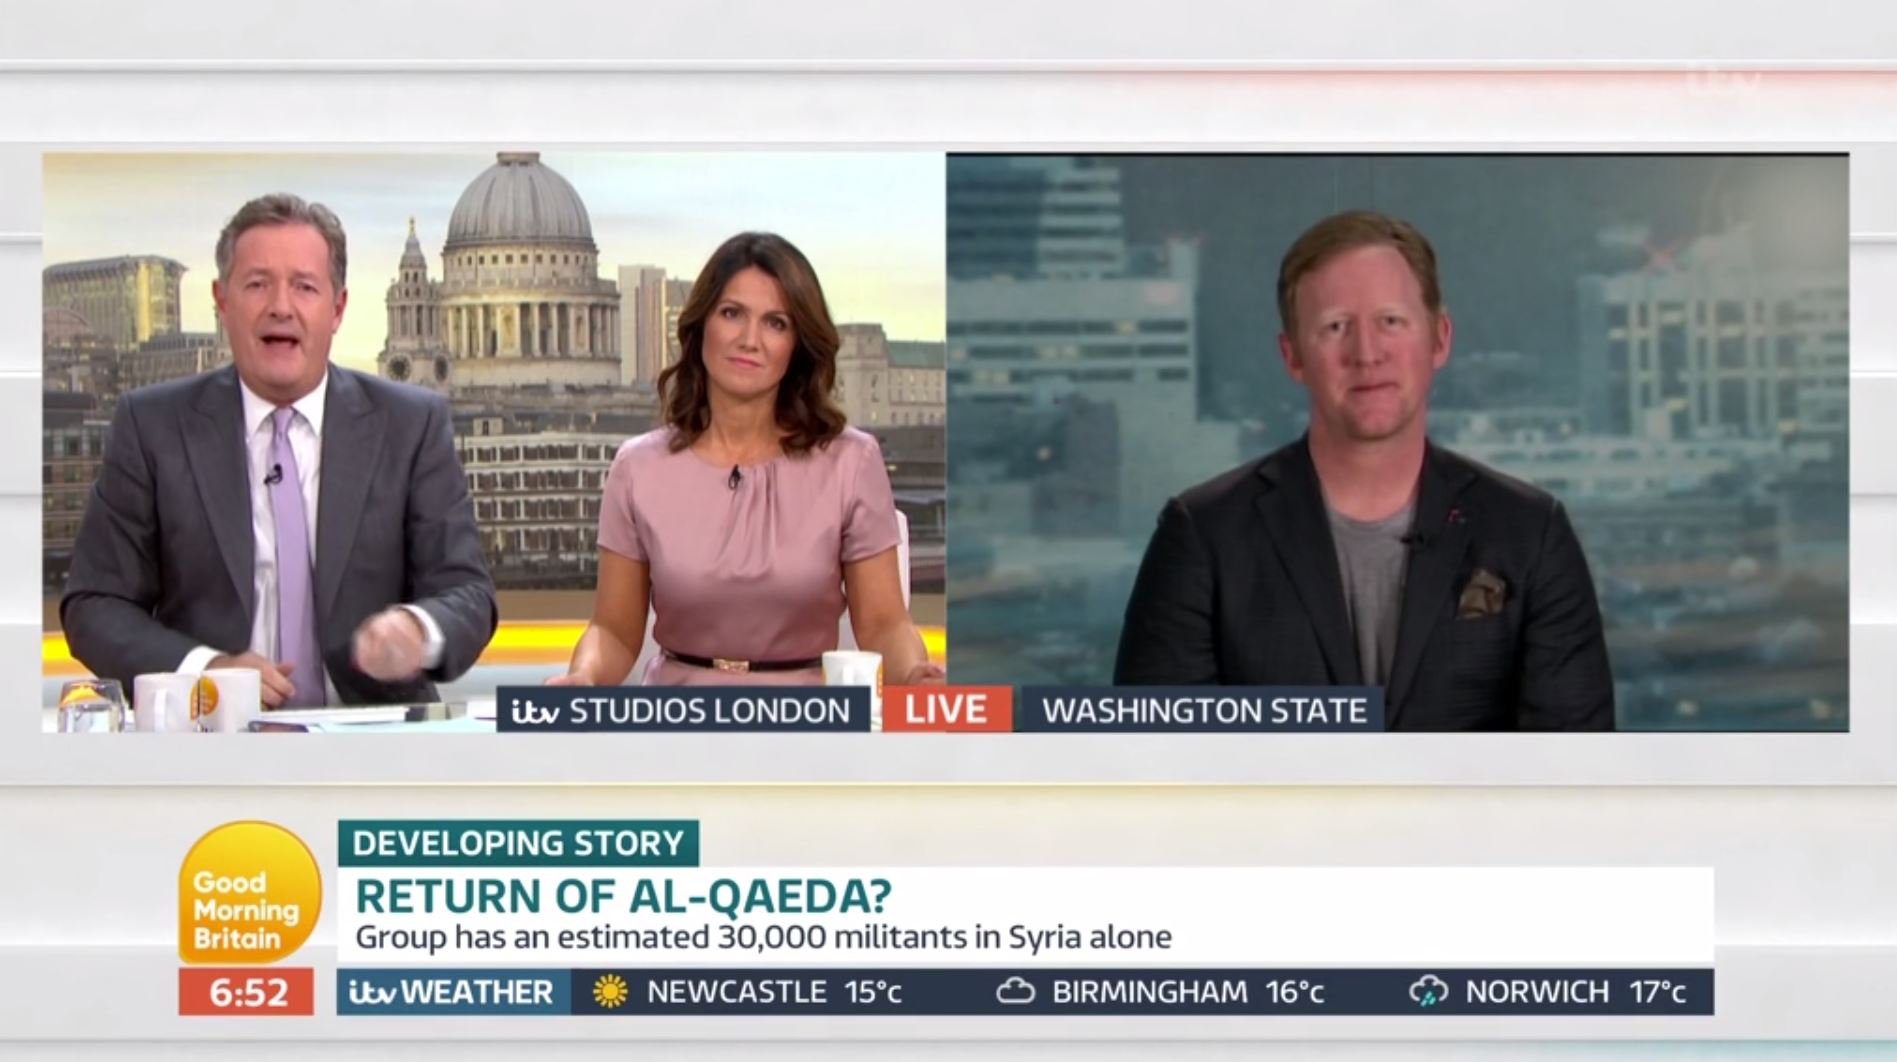 On the anniversary of September 11, the man who shot dead Osama Bin Laden spoke about firing the gun that killed him. Robert O???Neill told Piers Morgan and Susanna Reid: ???I remember firing the shots that killed Osama Bin Laden, and the moment his body was there and I put his wife on the bed next to him and his two year old son who was there, and me being a father and thinking this poor kid has nothing to do with this, I realised this isn???t over and I wish no one had to see this stuff. But it was kind of a realisation, that we are not going to win this war through bullets and guns but through education, there???s an ideology out there that wants to make us less safe. Is this the worst thing I???ve ever done or the best thing I???ve ever done? I???m not sure of the answer yet. There are men and women that wish us ill will??????